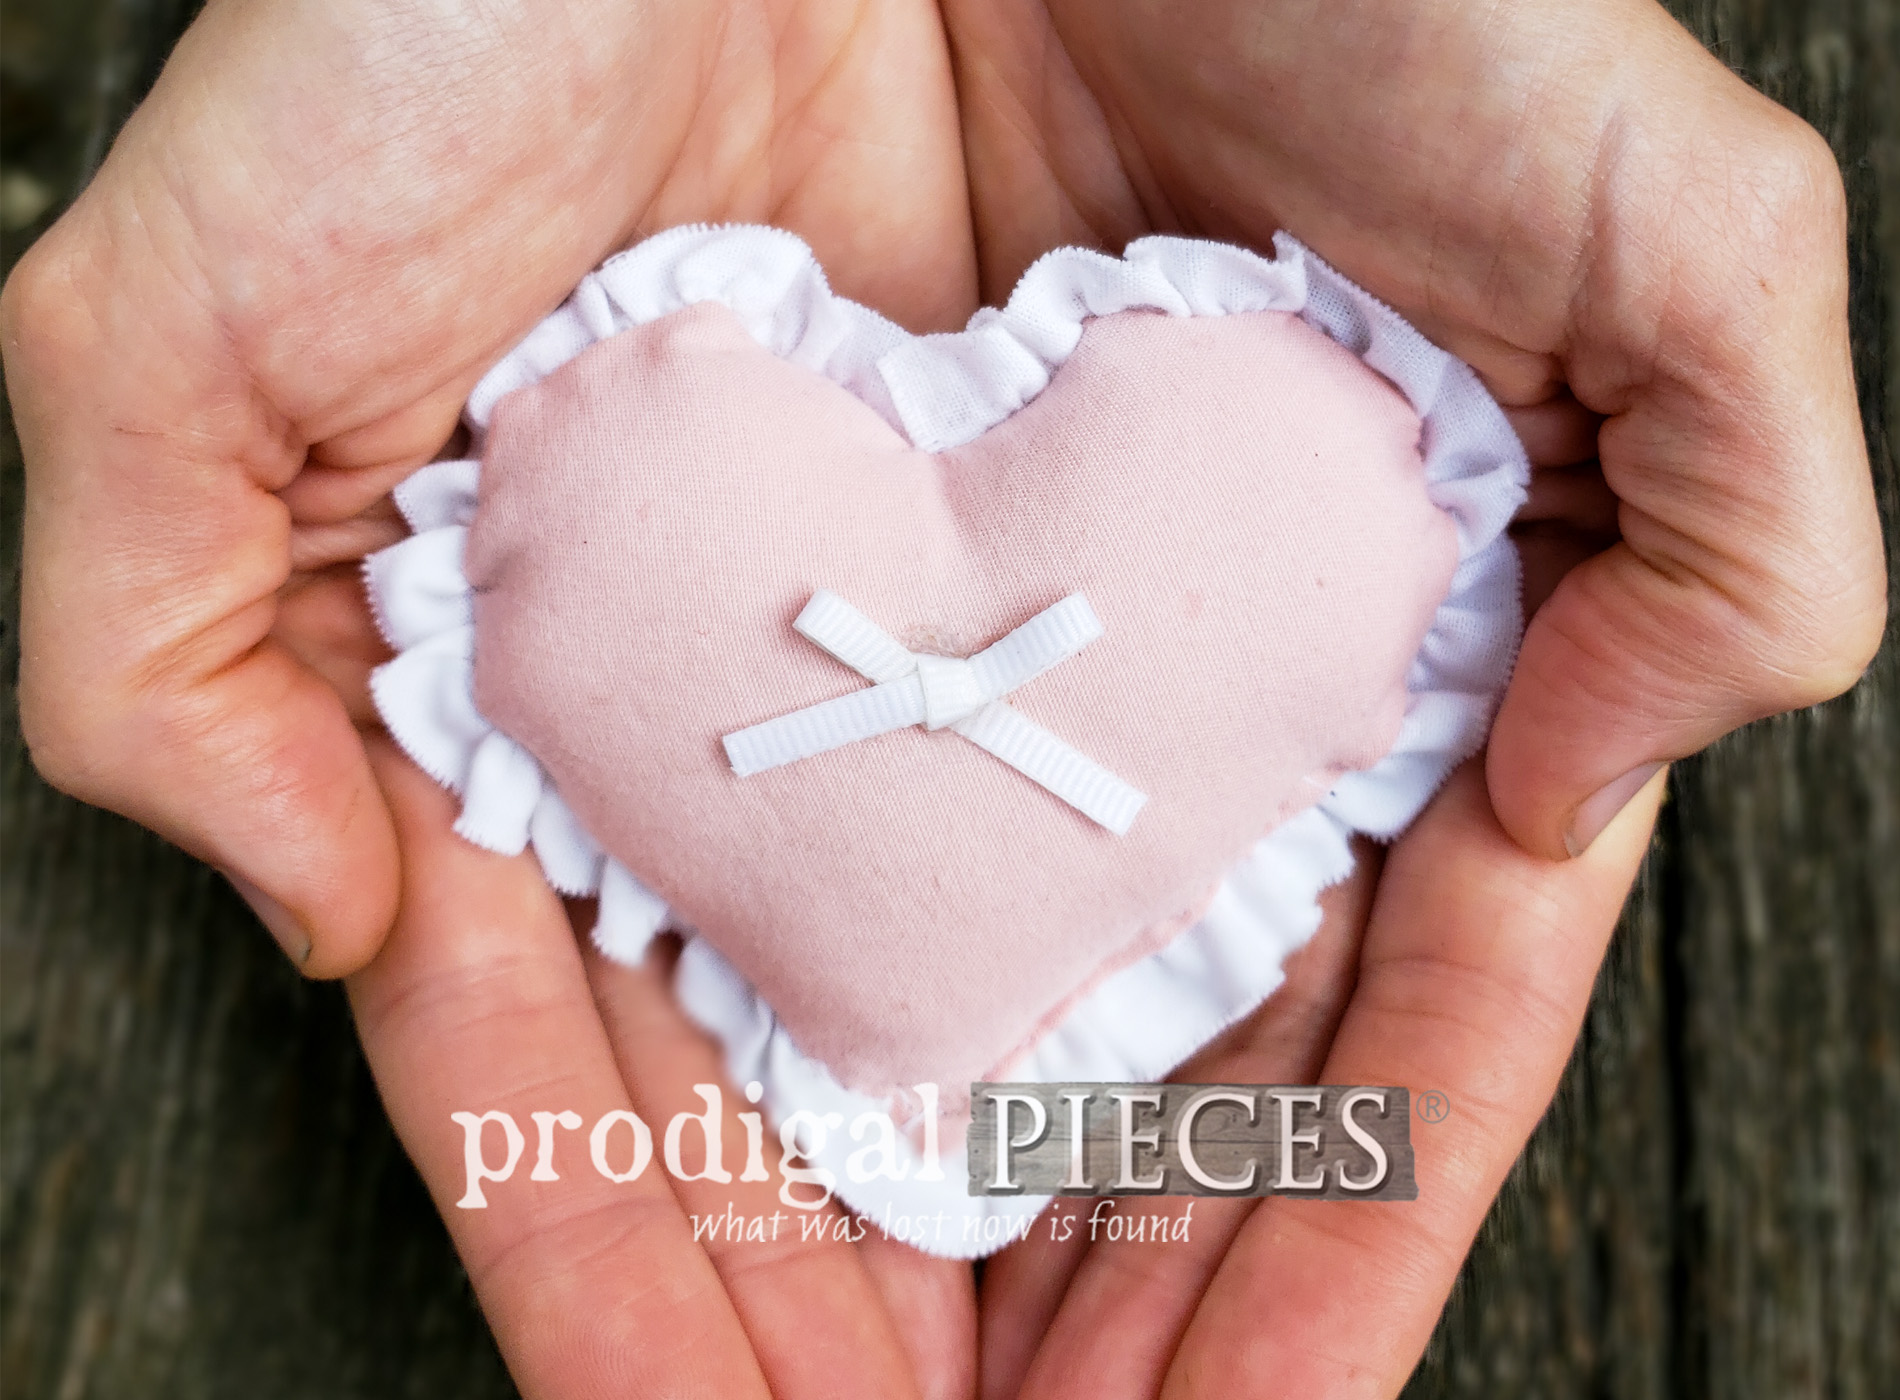 Featured Prodigal Pieces Finding Home - a furniture re-homing program for those who need it most | prodigalpieces.com